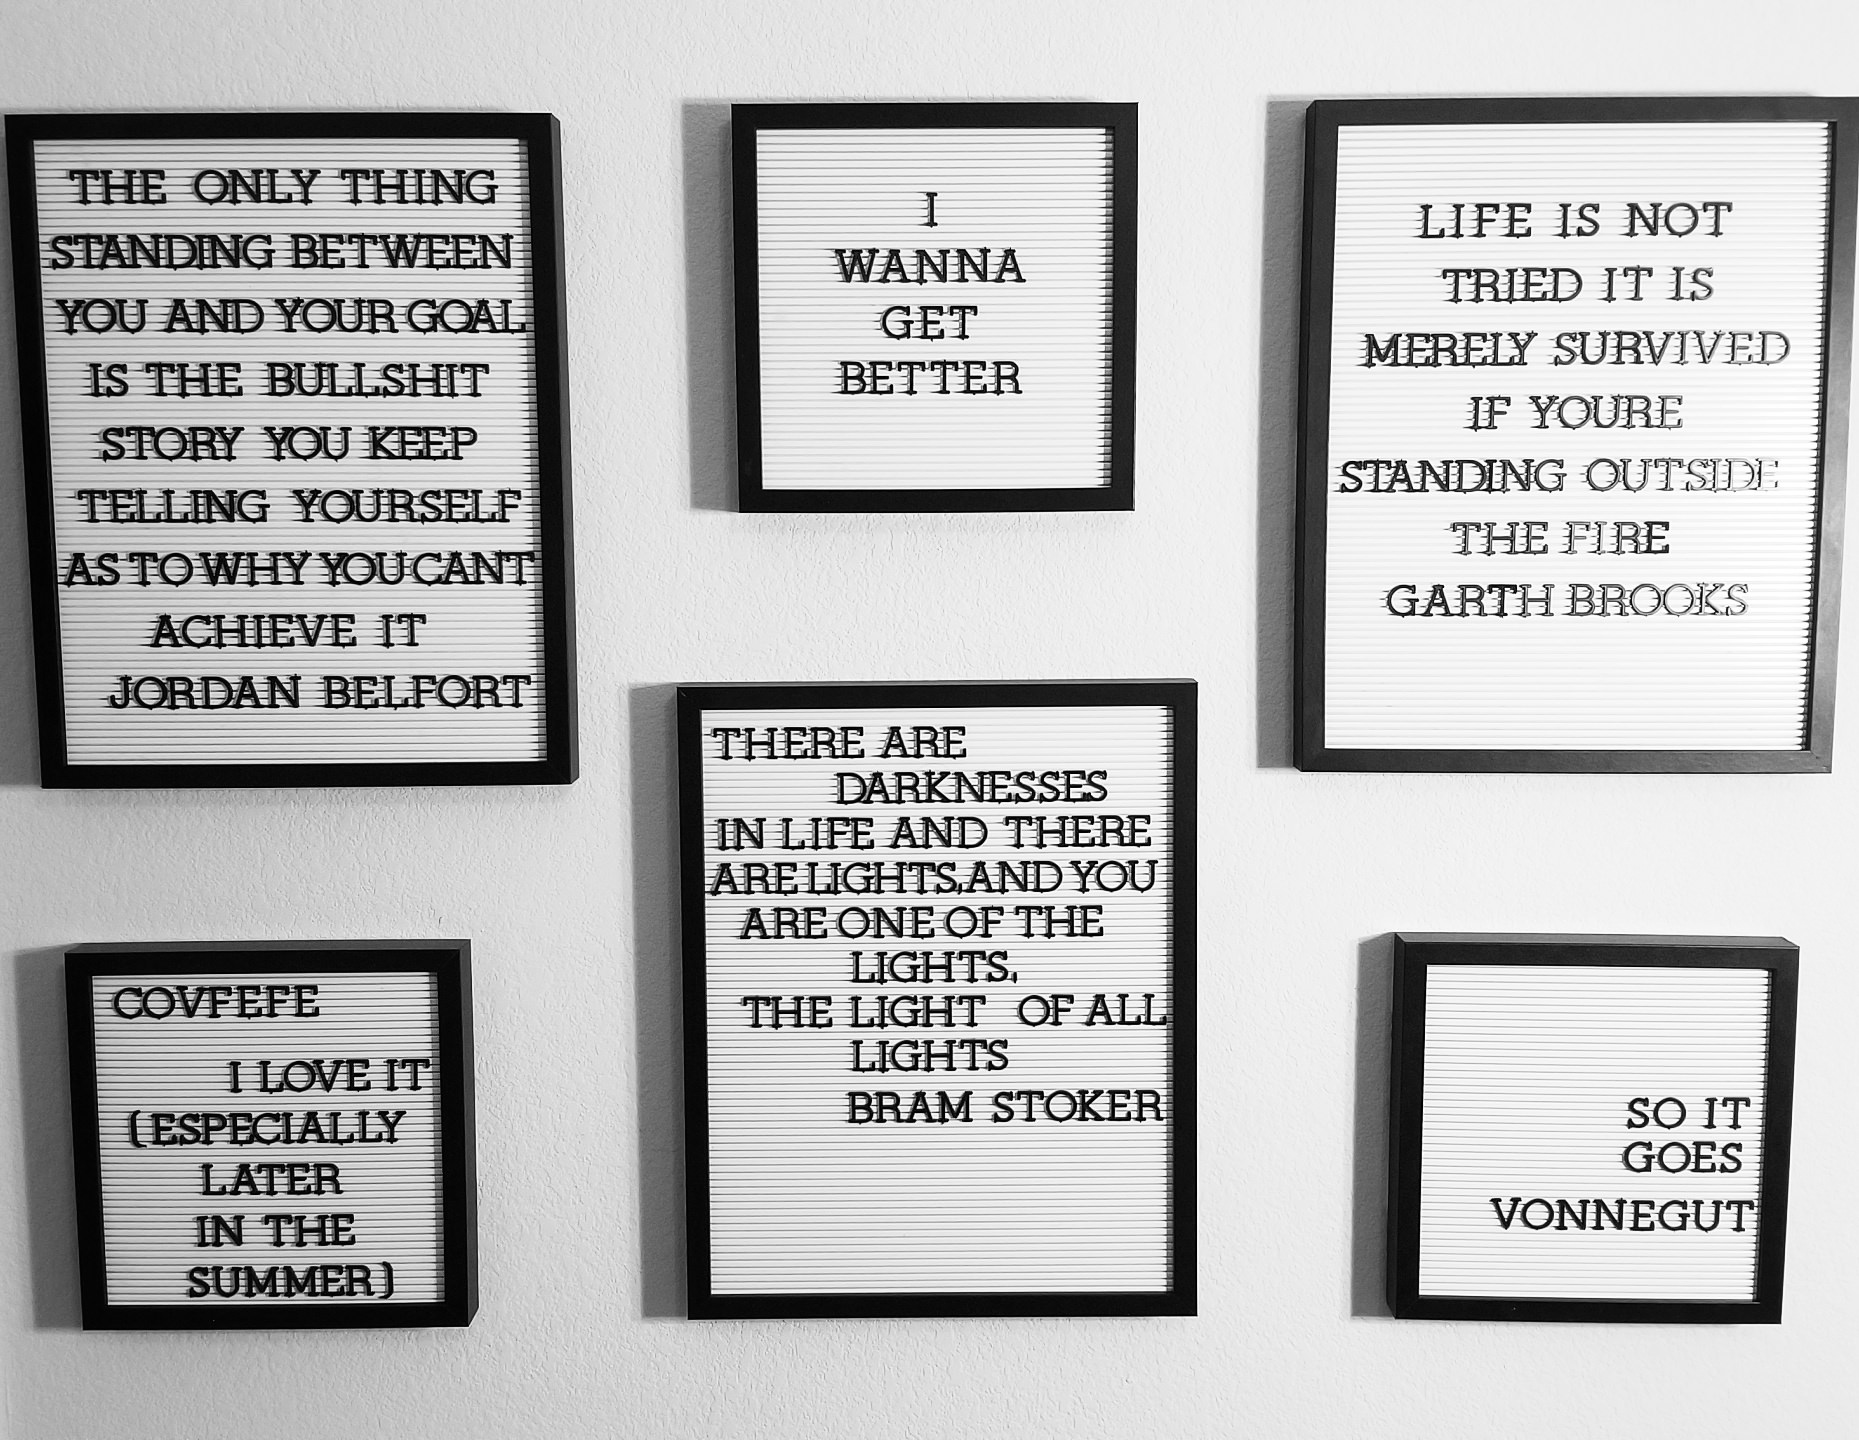 [Image] My New Bedroom Inspiration Wall